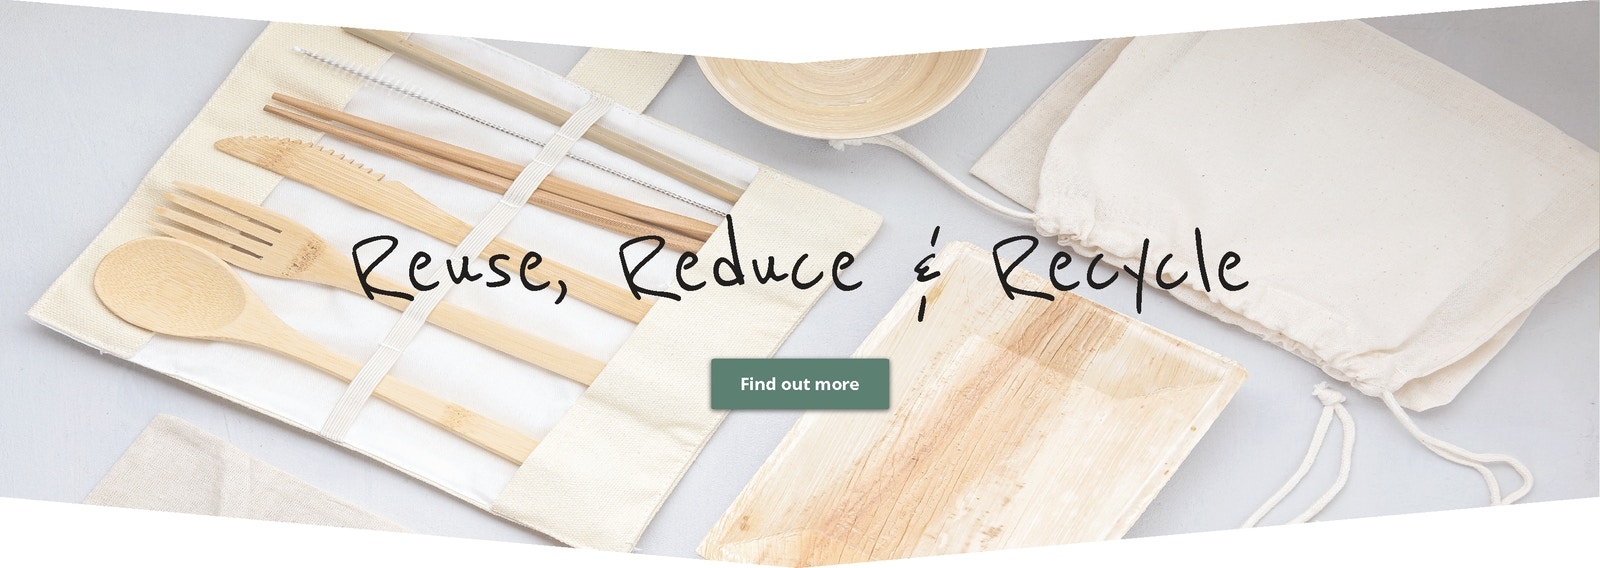 image of eco products with header reuse, reduce & recycle